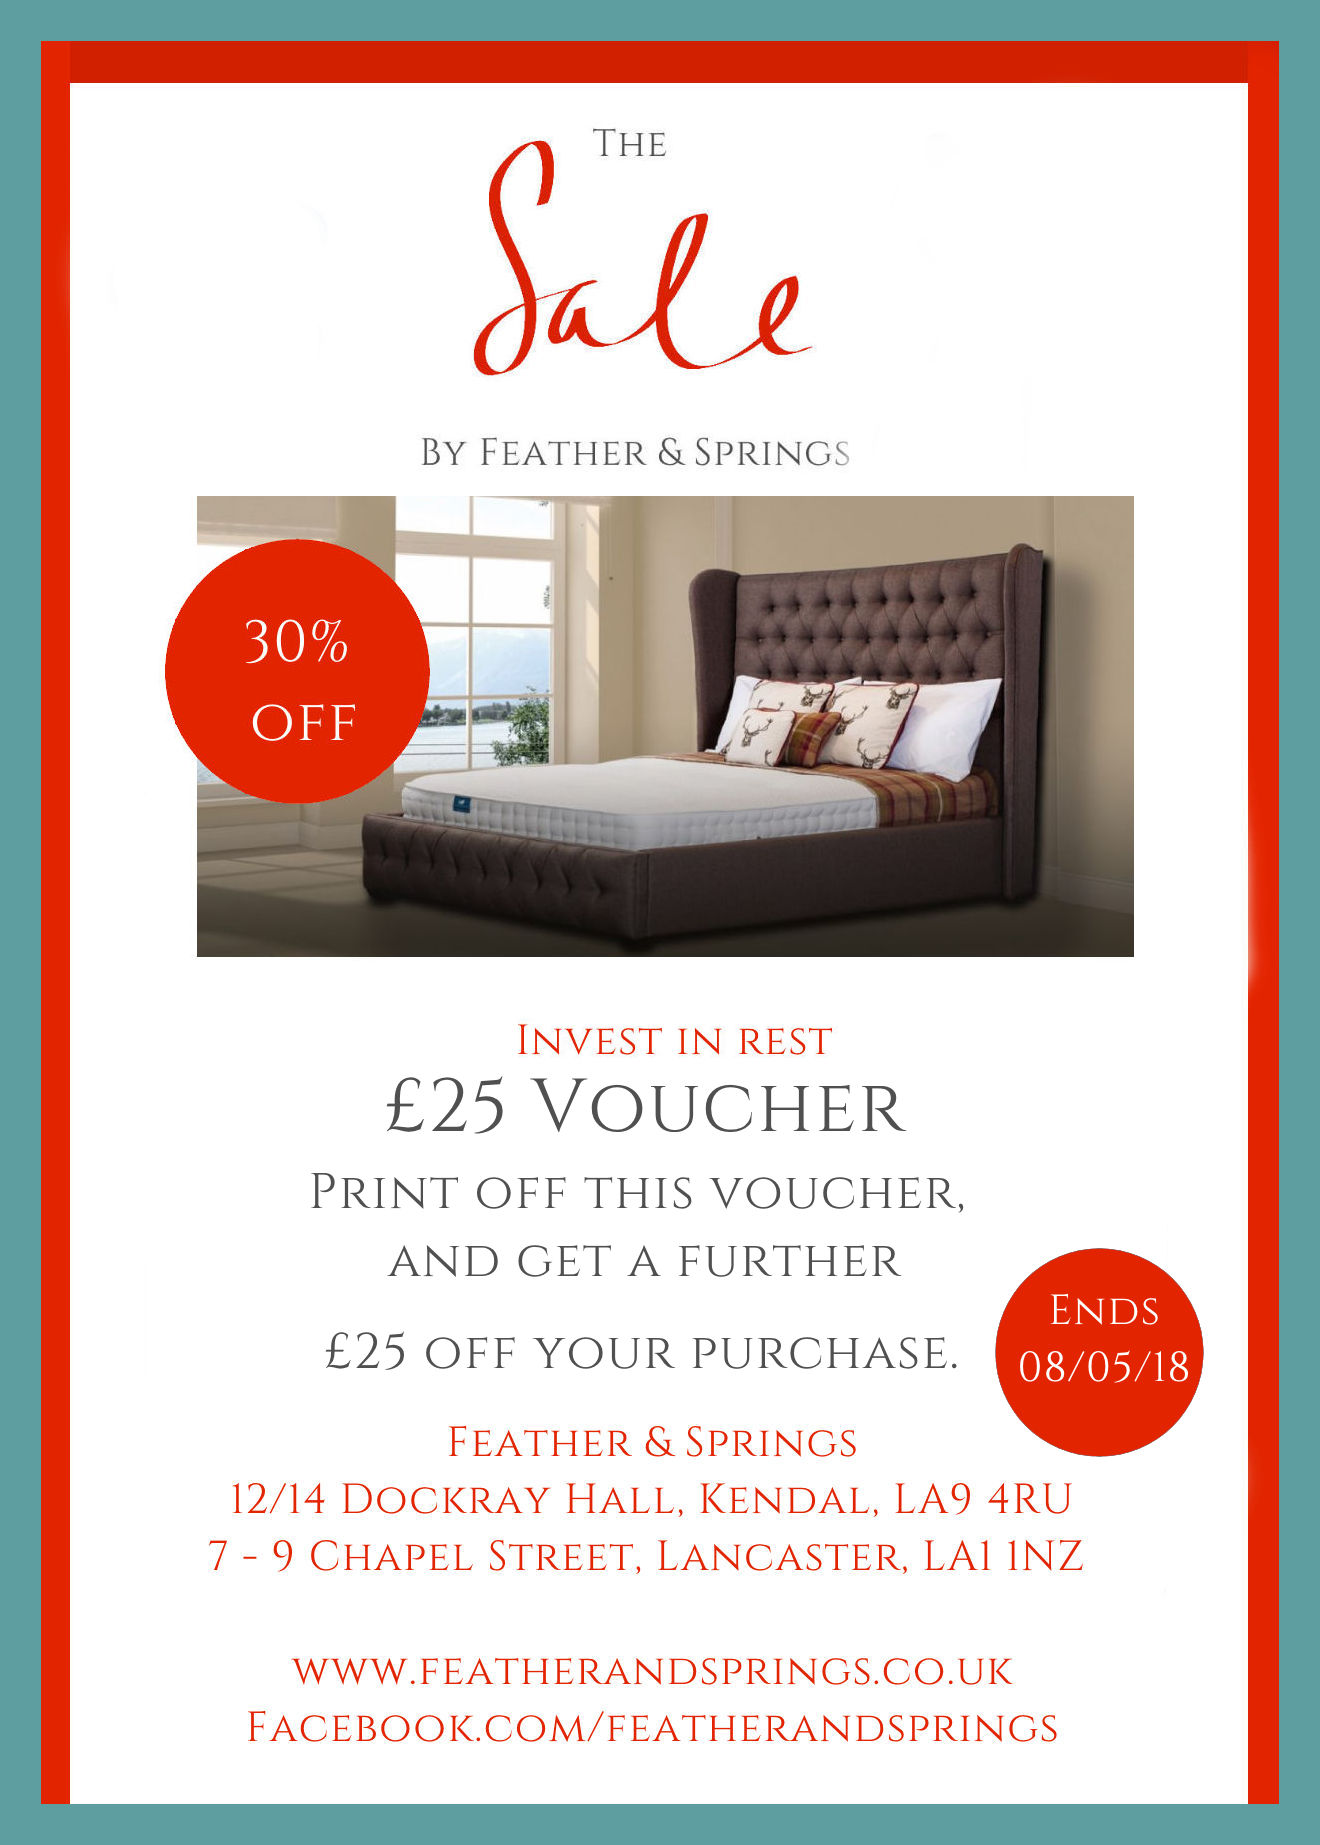 Print off for a further £25 off